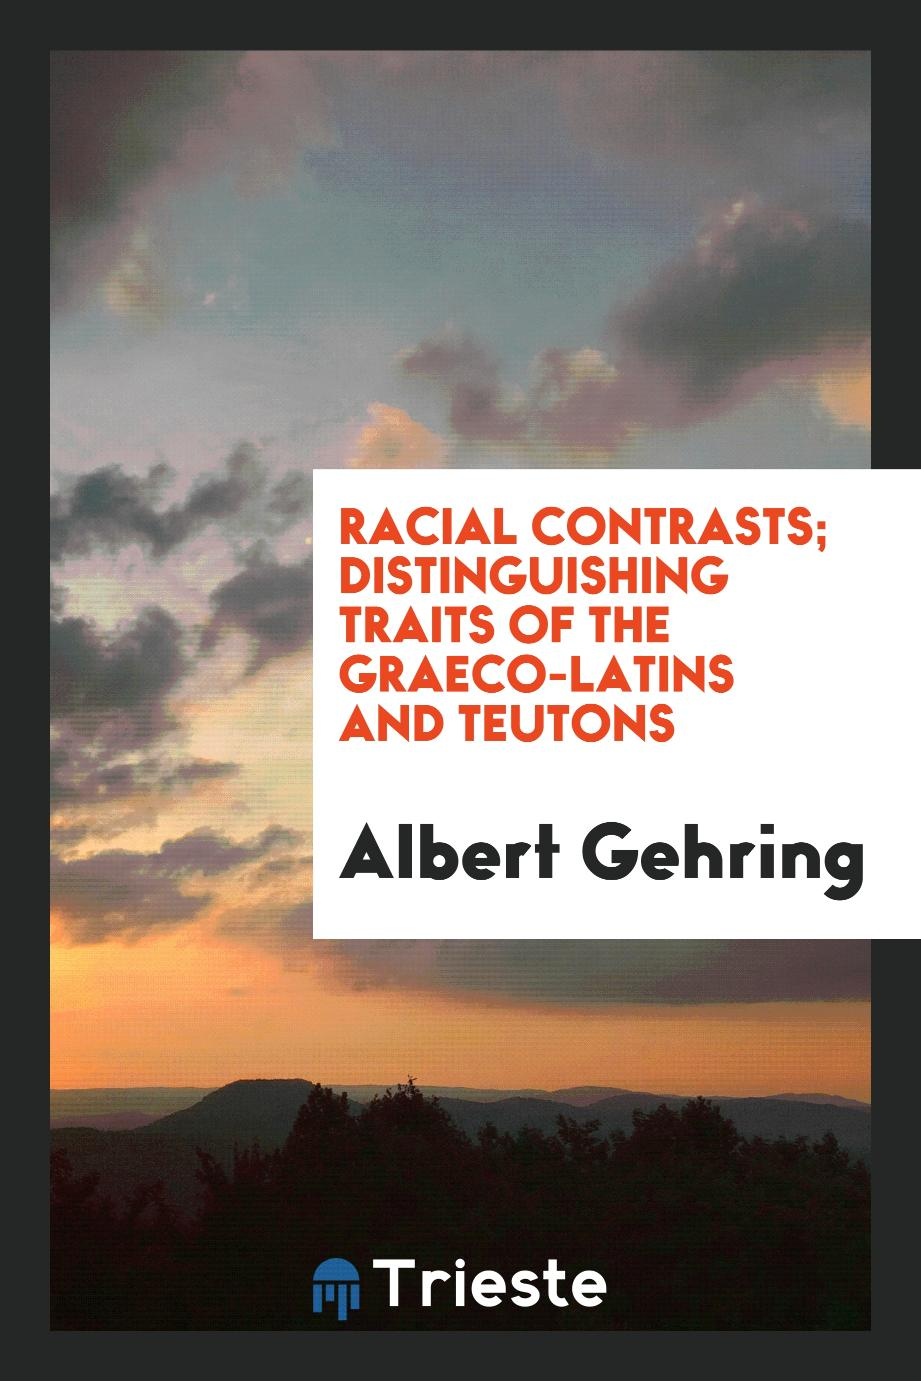 Racial contrasts; distinguishing traits of the Graeco-Latins and Teutons